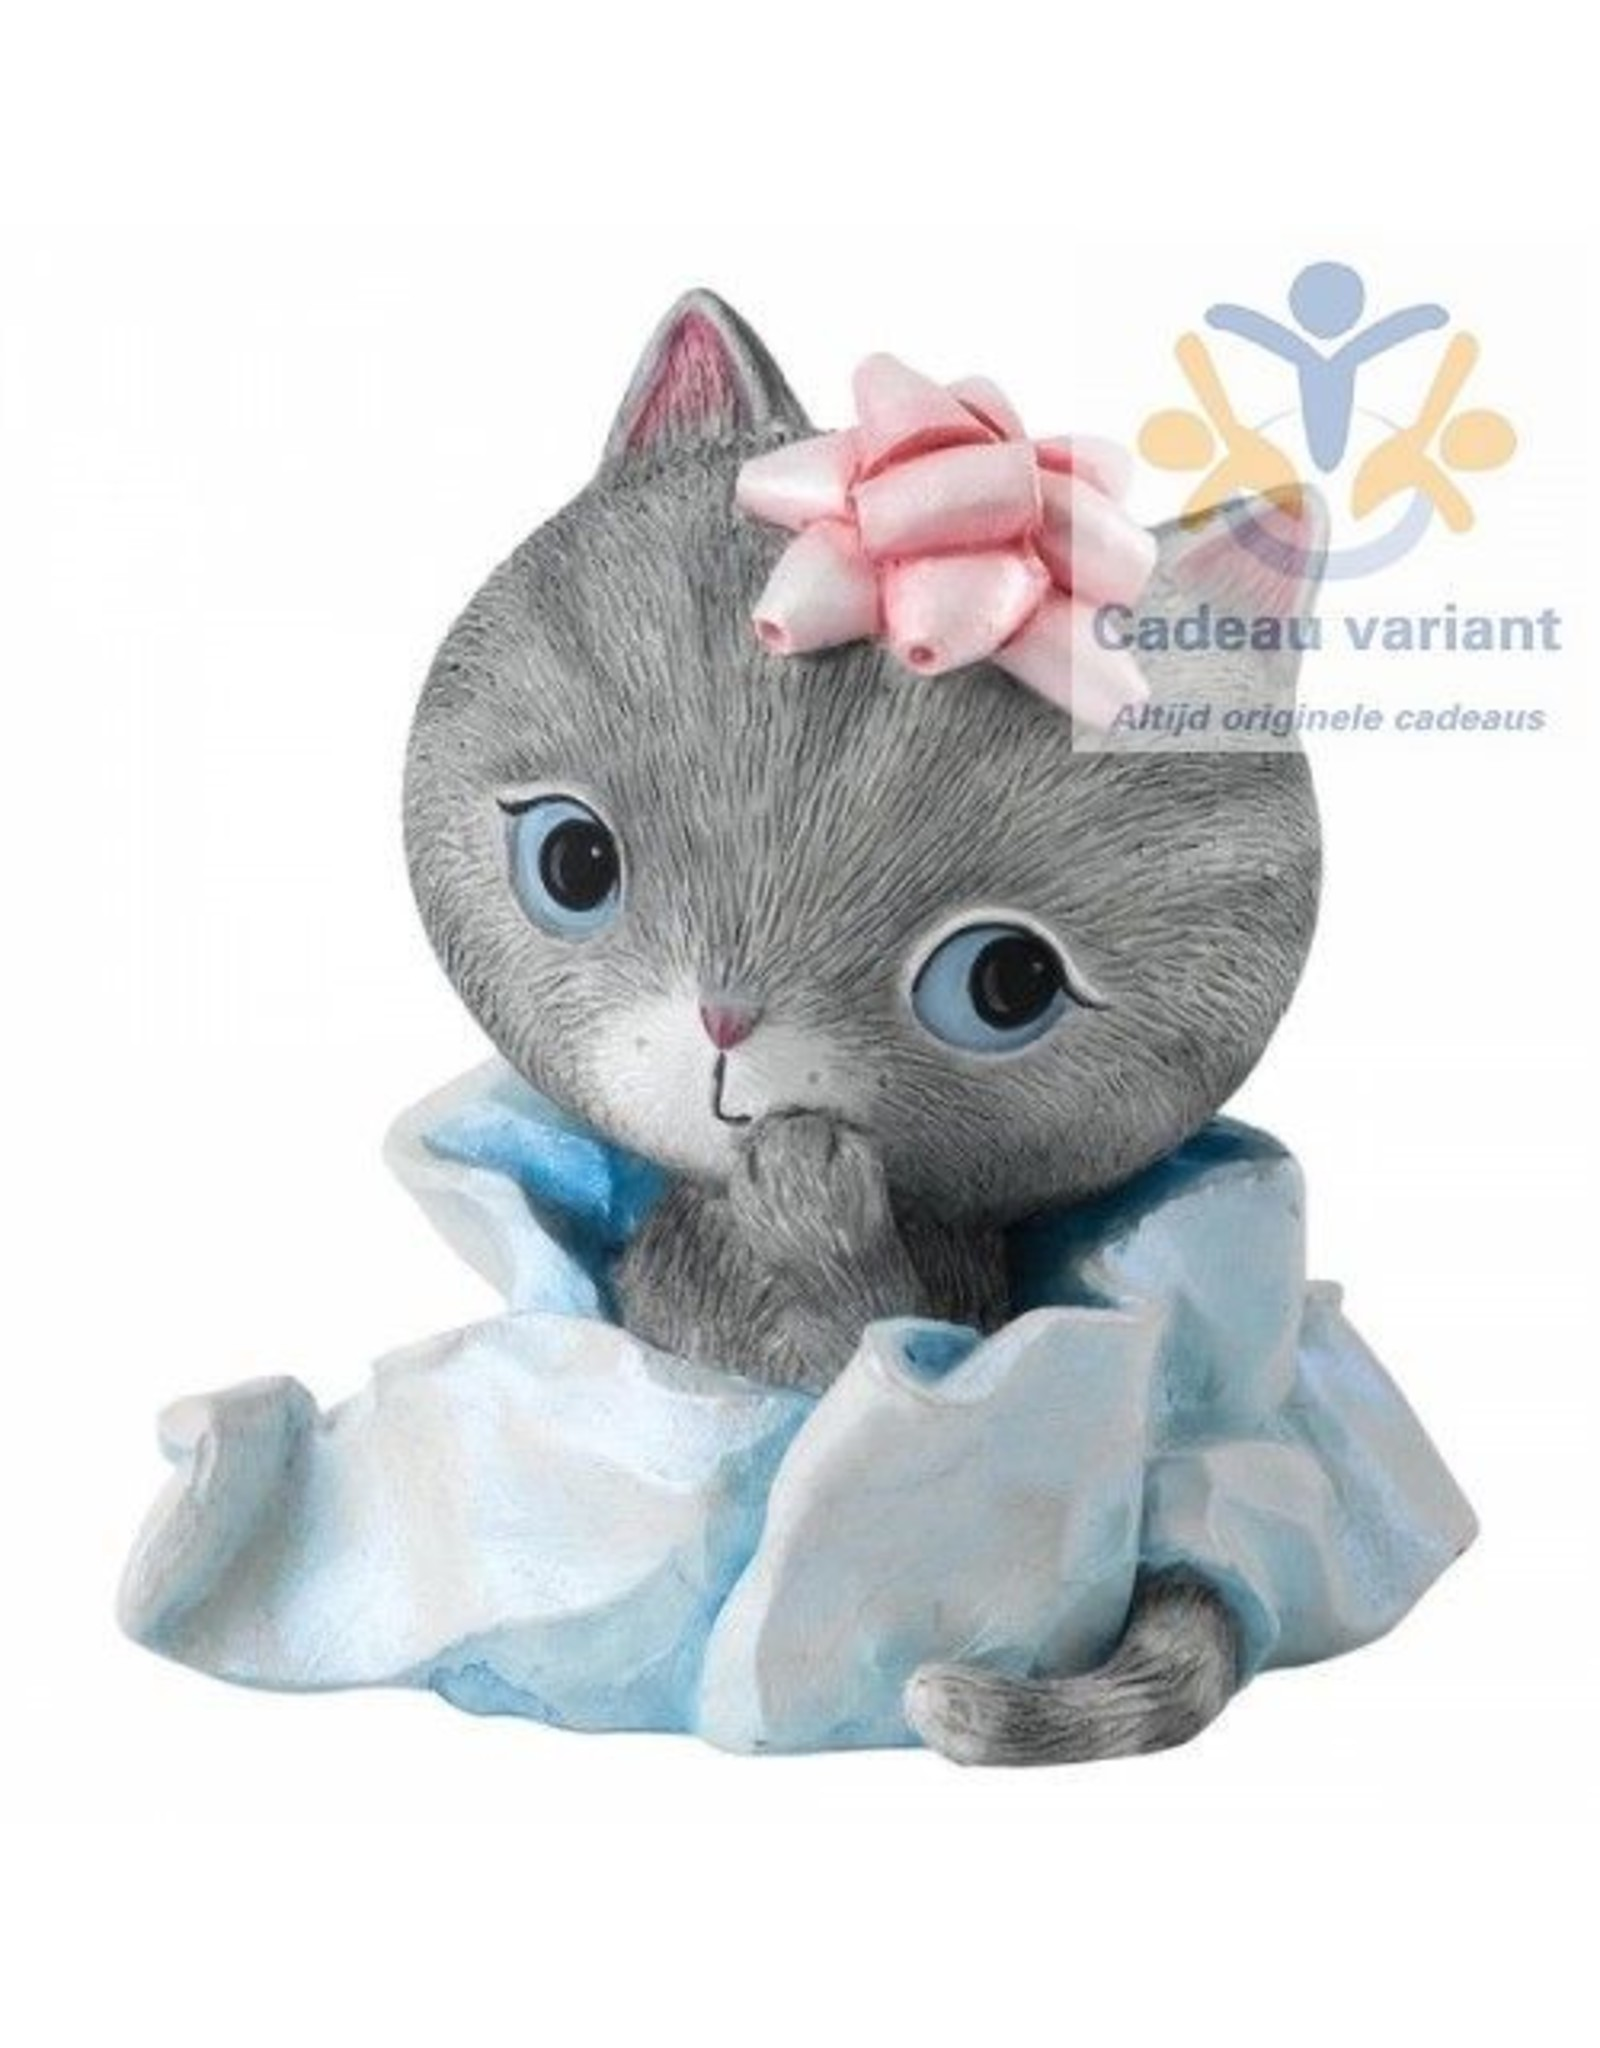 Little Meow wrapped up beeld